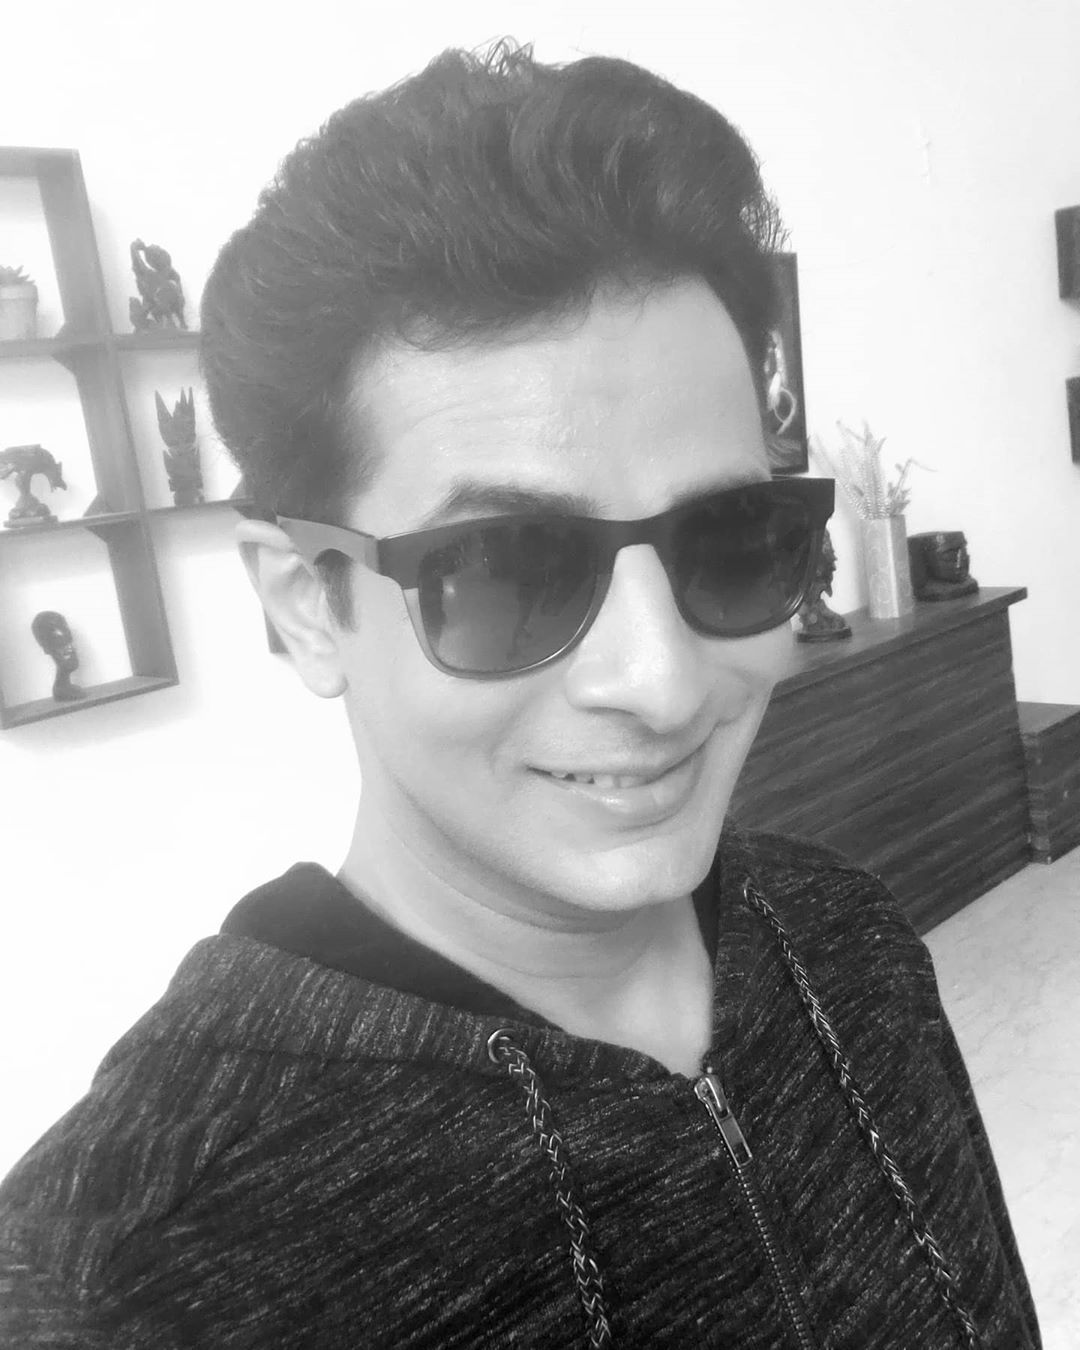 Smile 😀 even in monochrome 😎 . #blackandwhite #smile #always #monochrome #OjasRawal #actor #selfie #throwback #memory #blackandwhitephotography #bnw #bnwphotography #bnwmood #blacknwhitephotography #blackandwhiteselfie #bnwportrait #ojas #mumbai #gujarat #gujju #gujarati #haterblockers #goggles #shades #smiling #happyme #selfietime #selfies #selfienation #selfielove